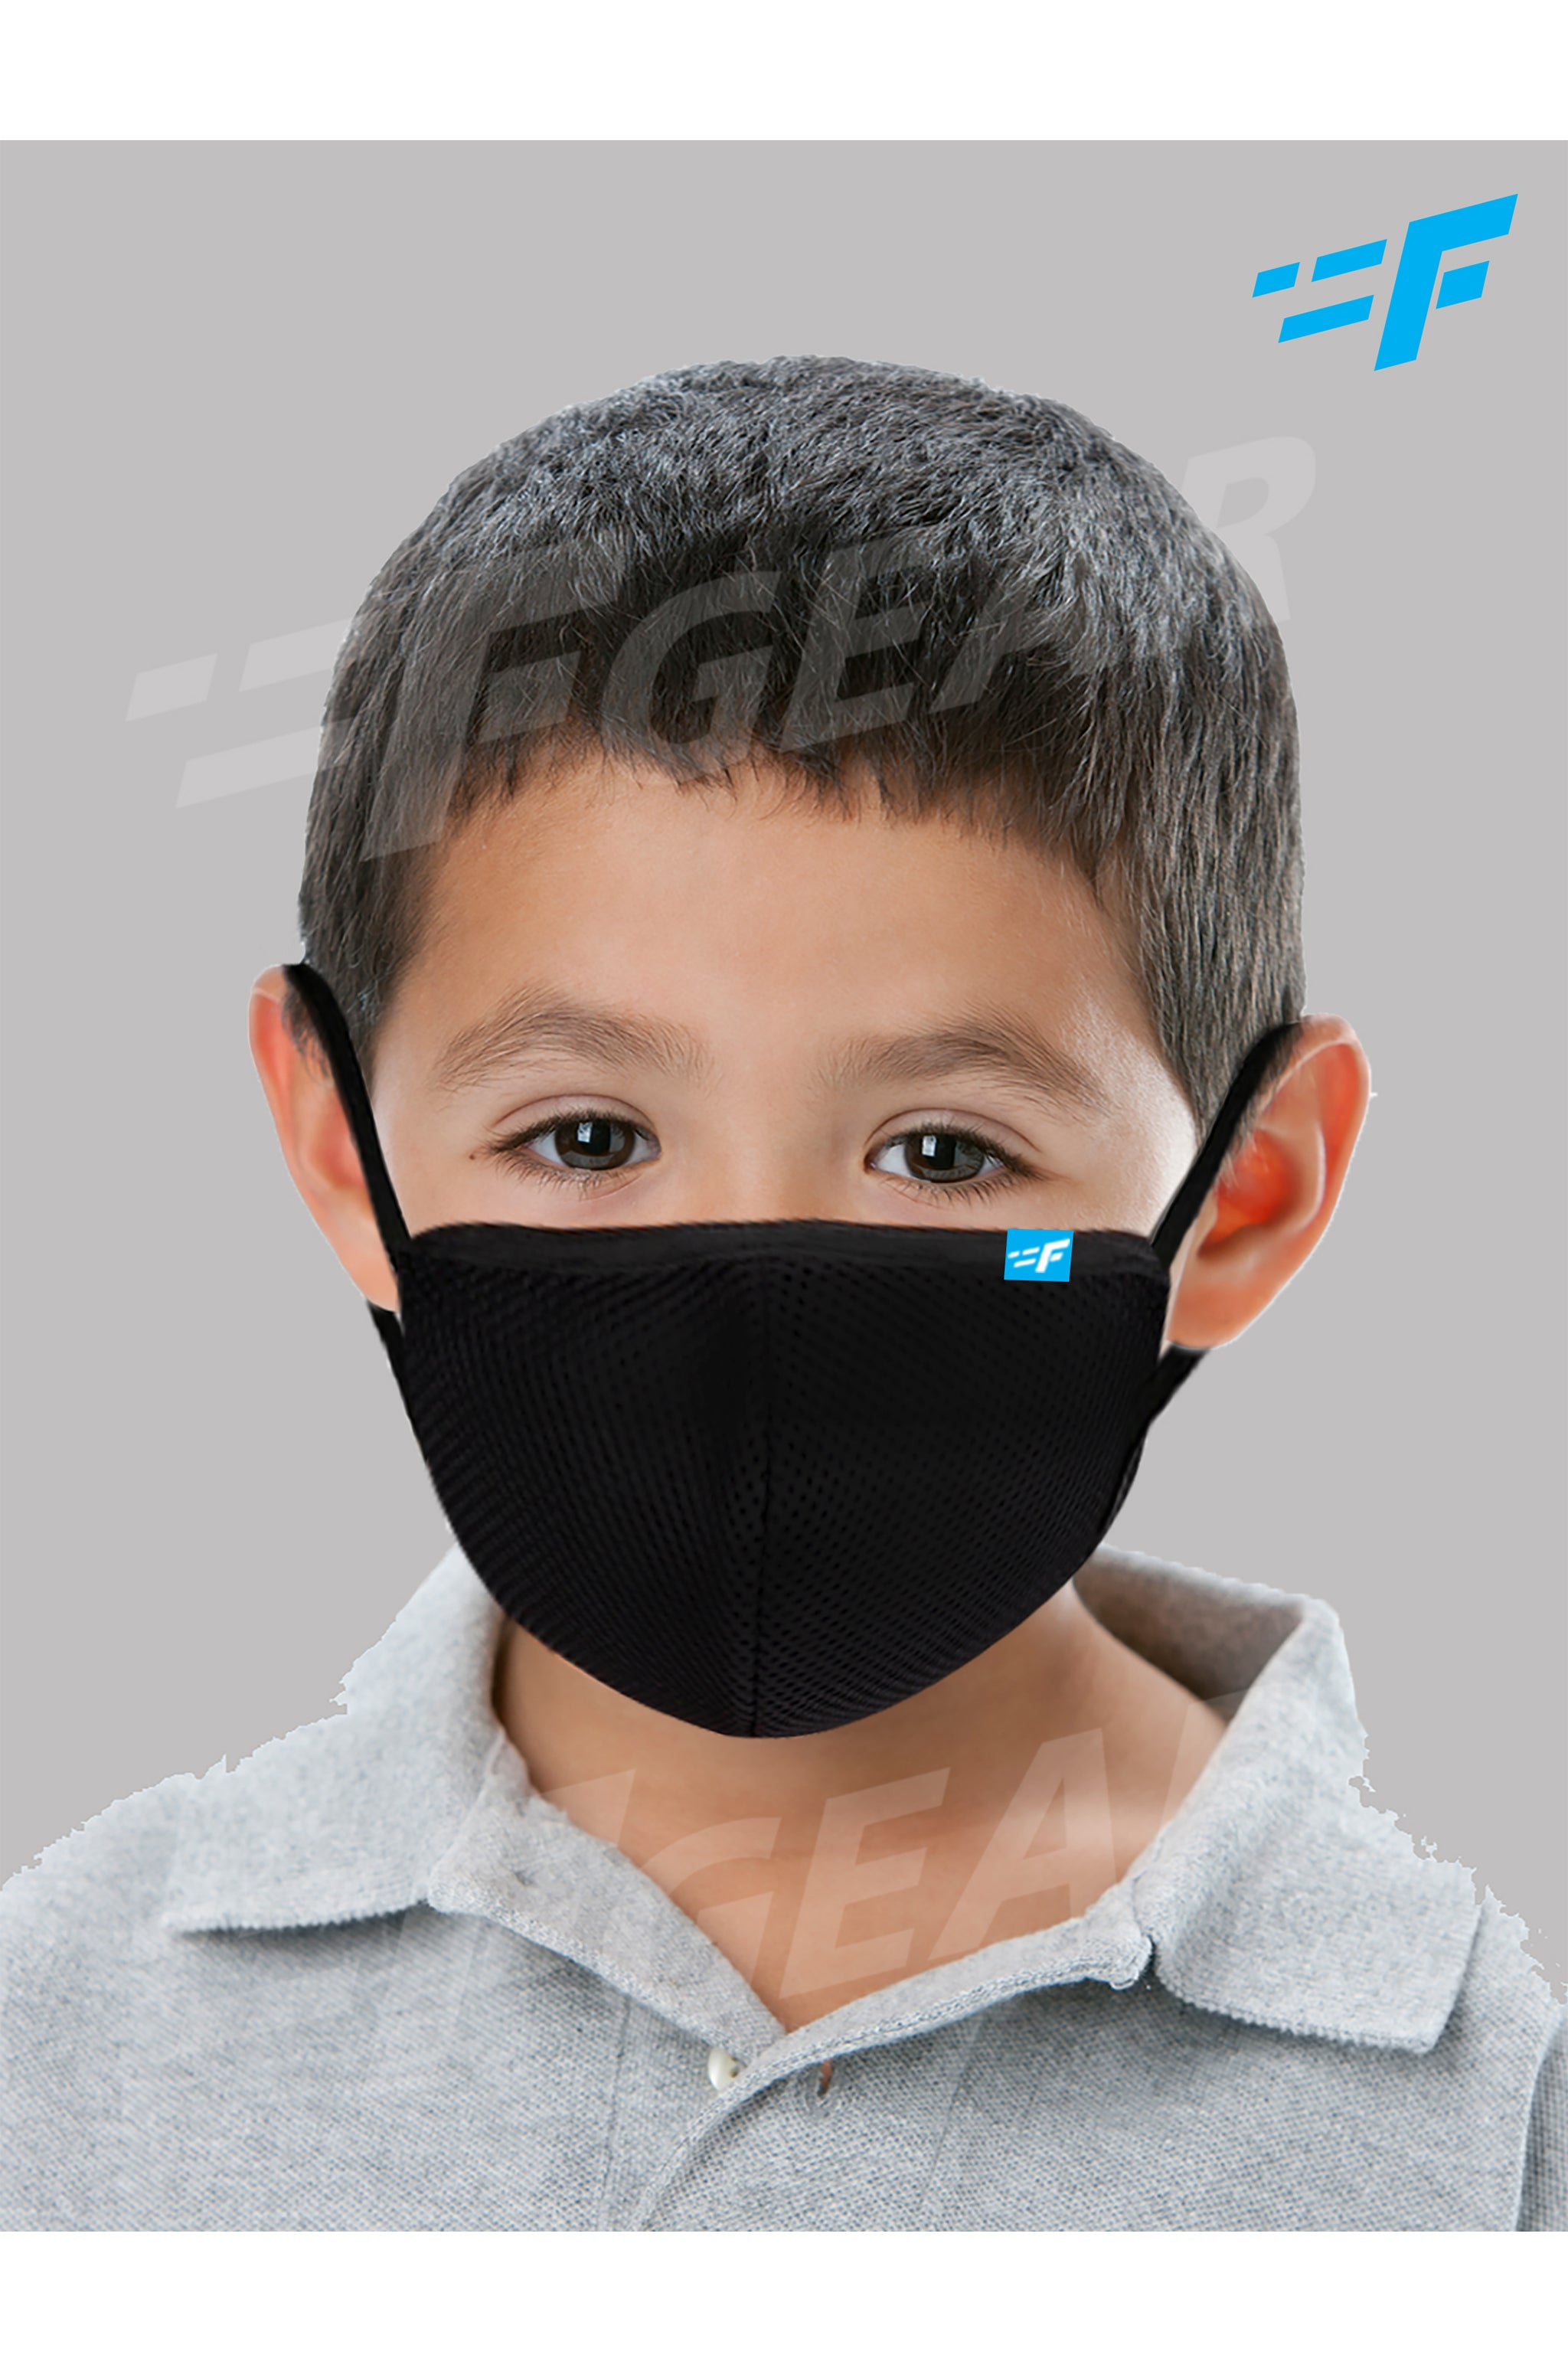 7layer F95 CE ISO SITRA Lab tested >95% BFE reusable washable Safeguard mask Black color Pack of 1